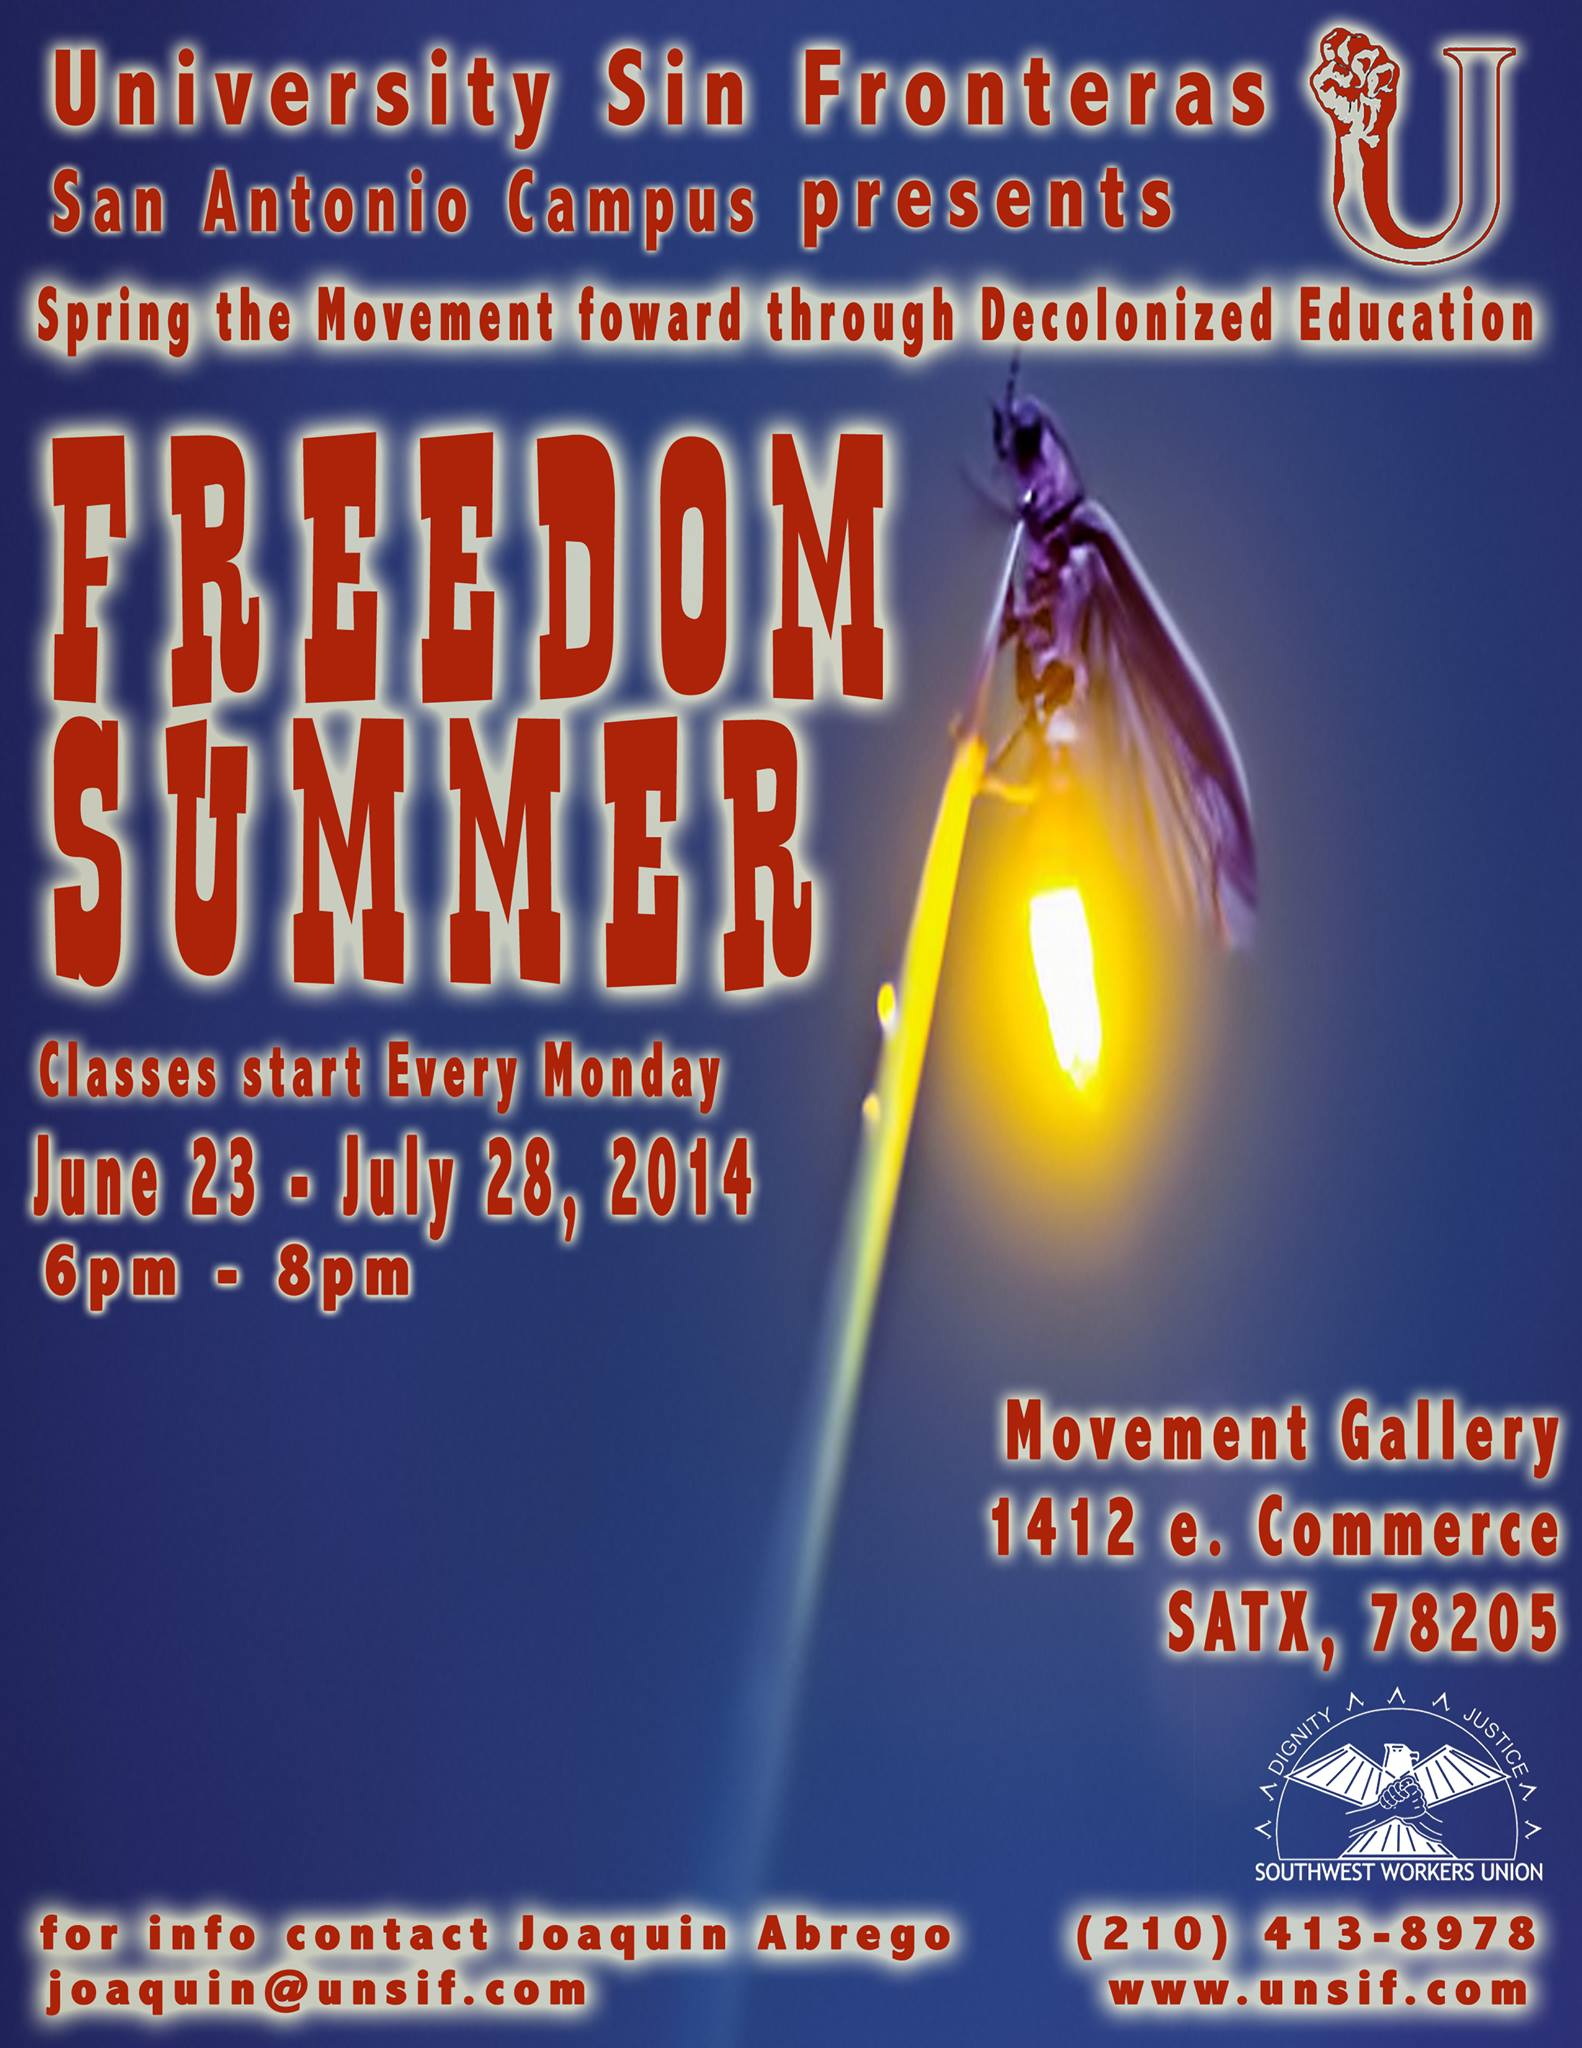 Freedom Summer '14 San Antonio Campus